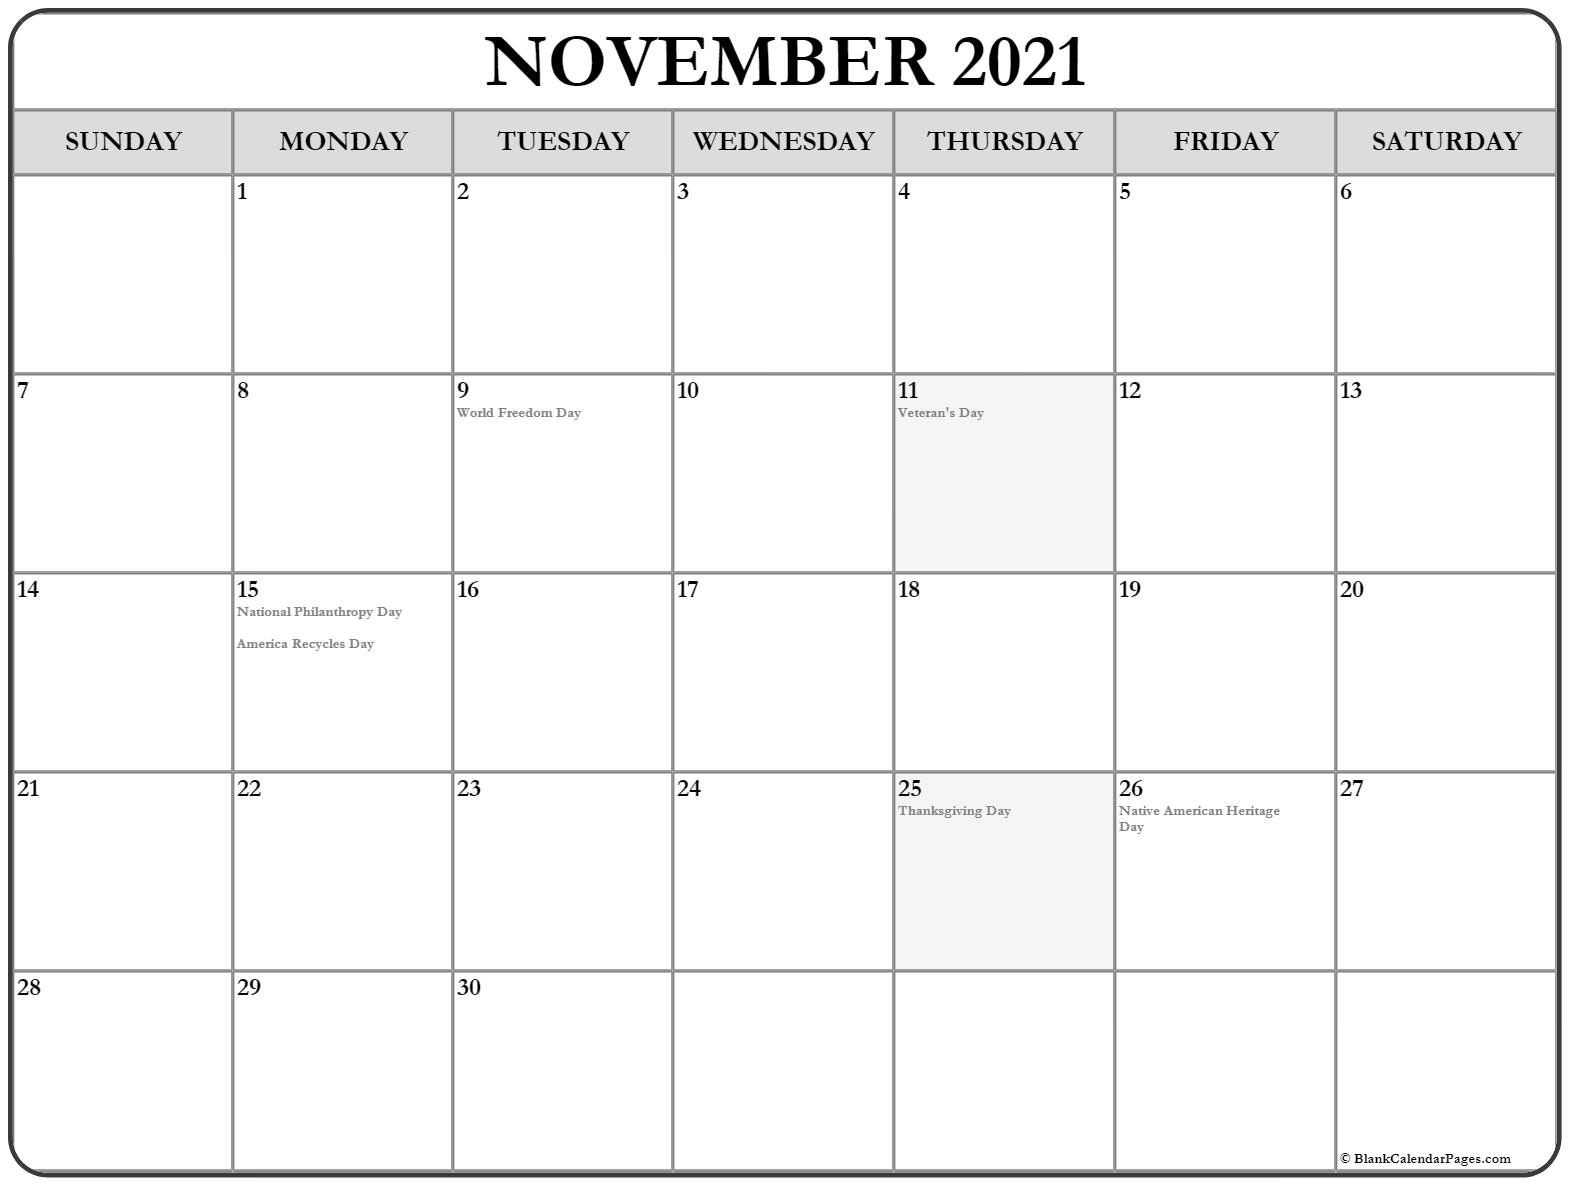 November 2018 USA holiday calendar. Incluides US federal holidays and observations